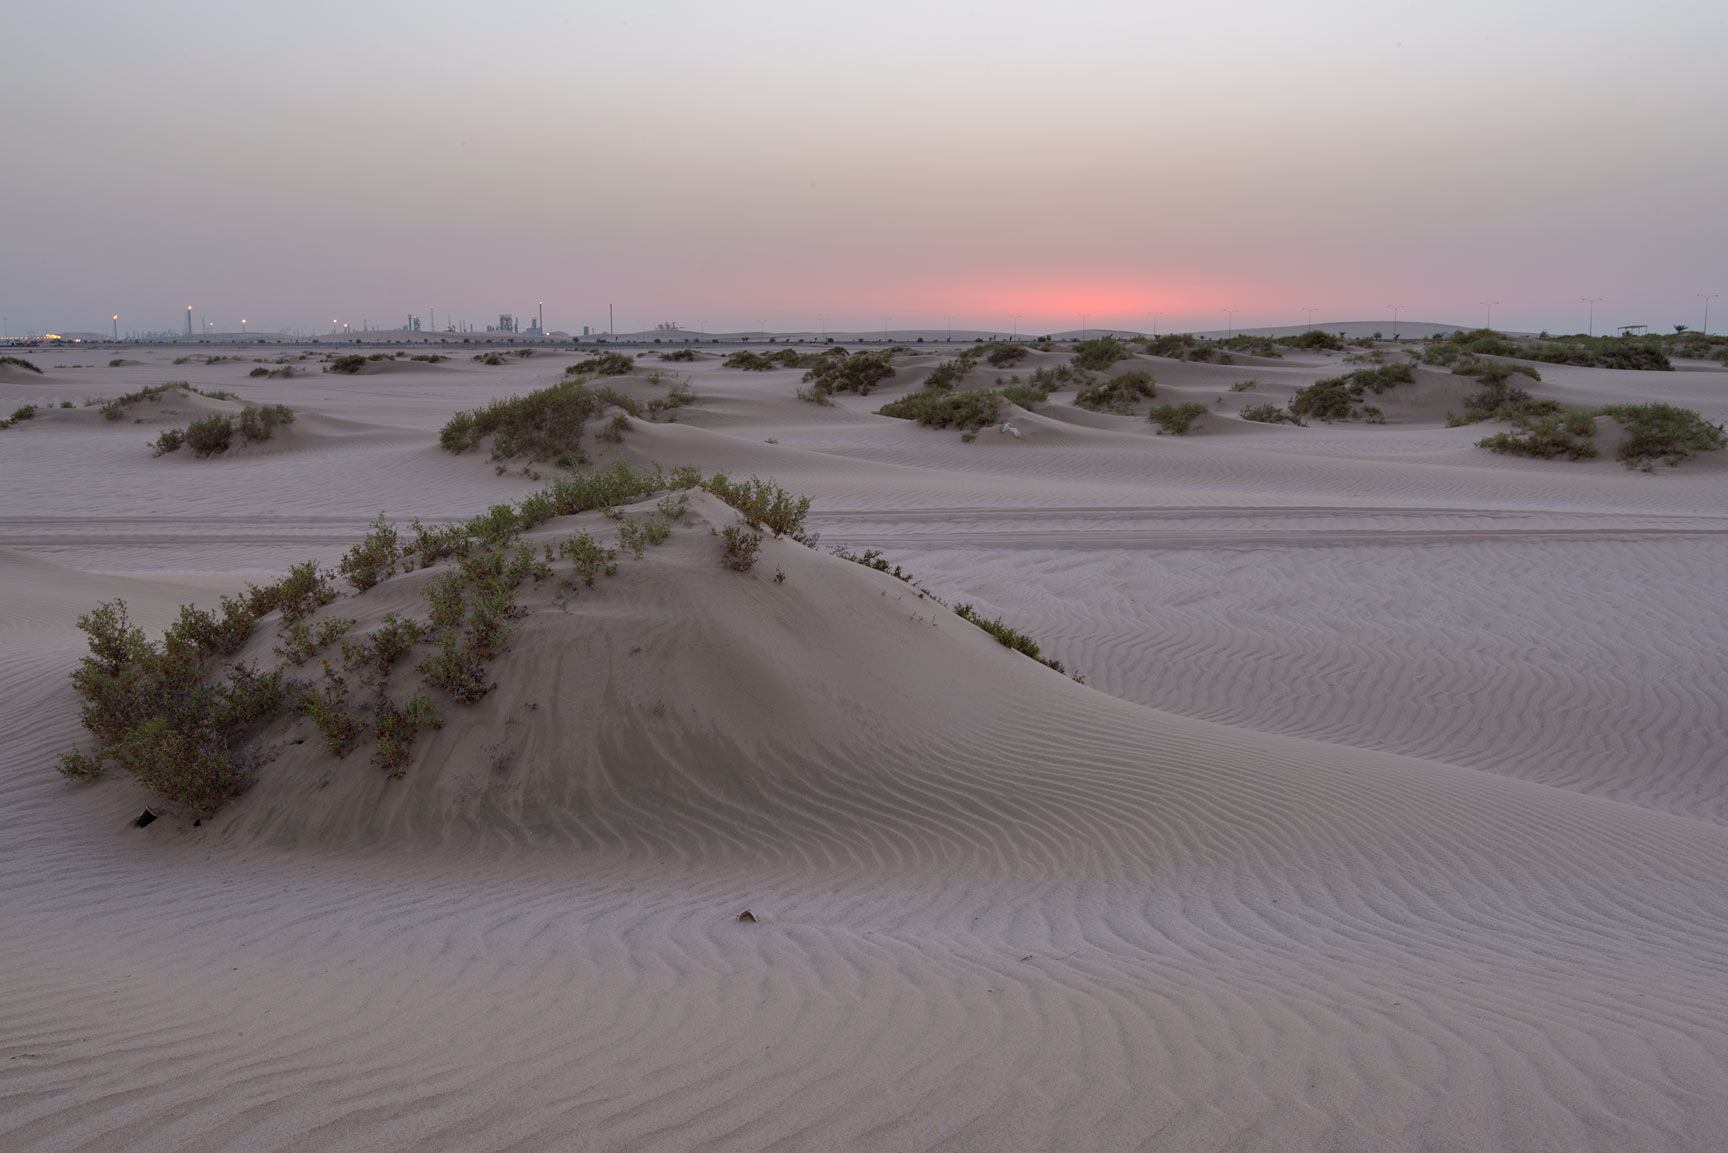 Sunrise in sands south from Sealine Beach Resort near Mesaieed. Southern Qatar